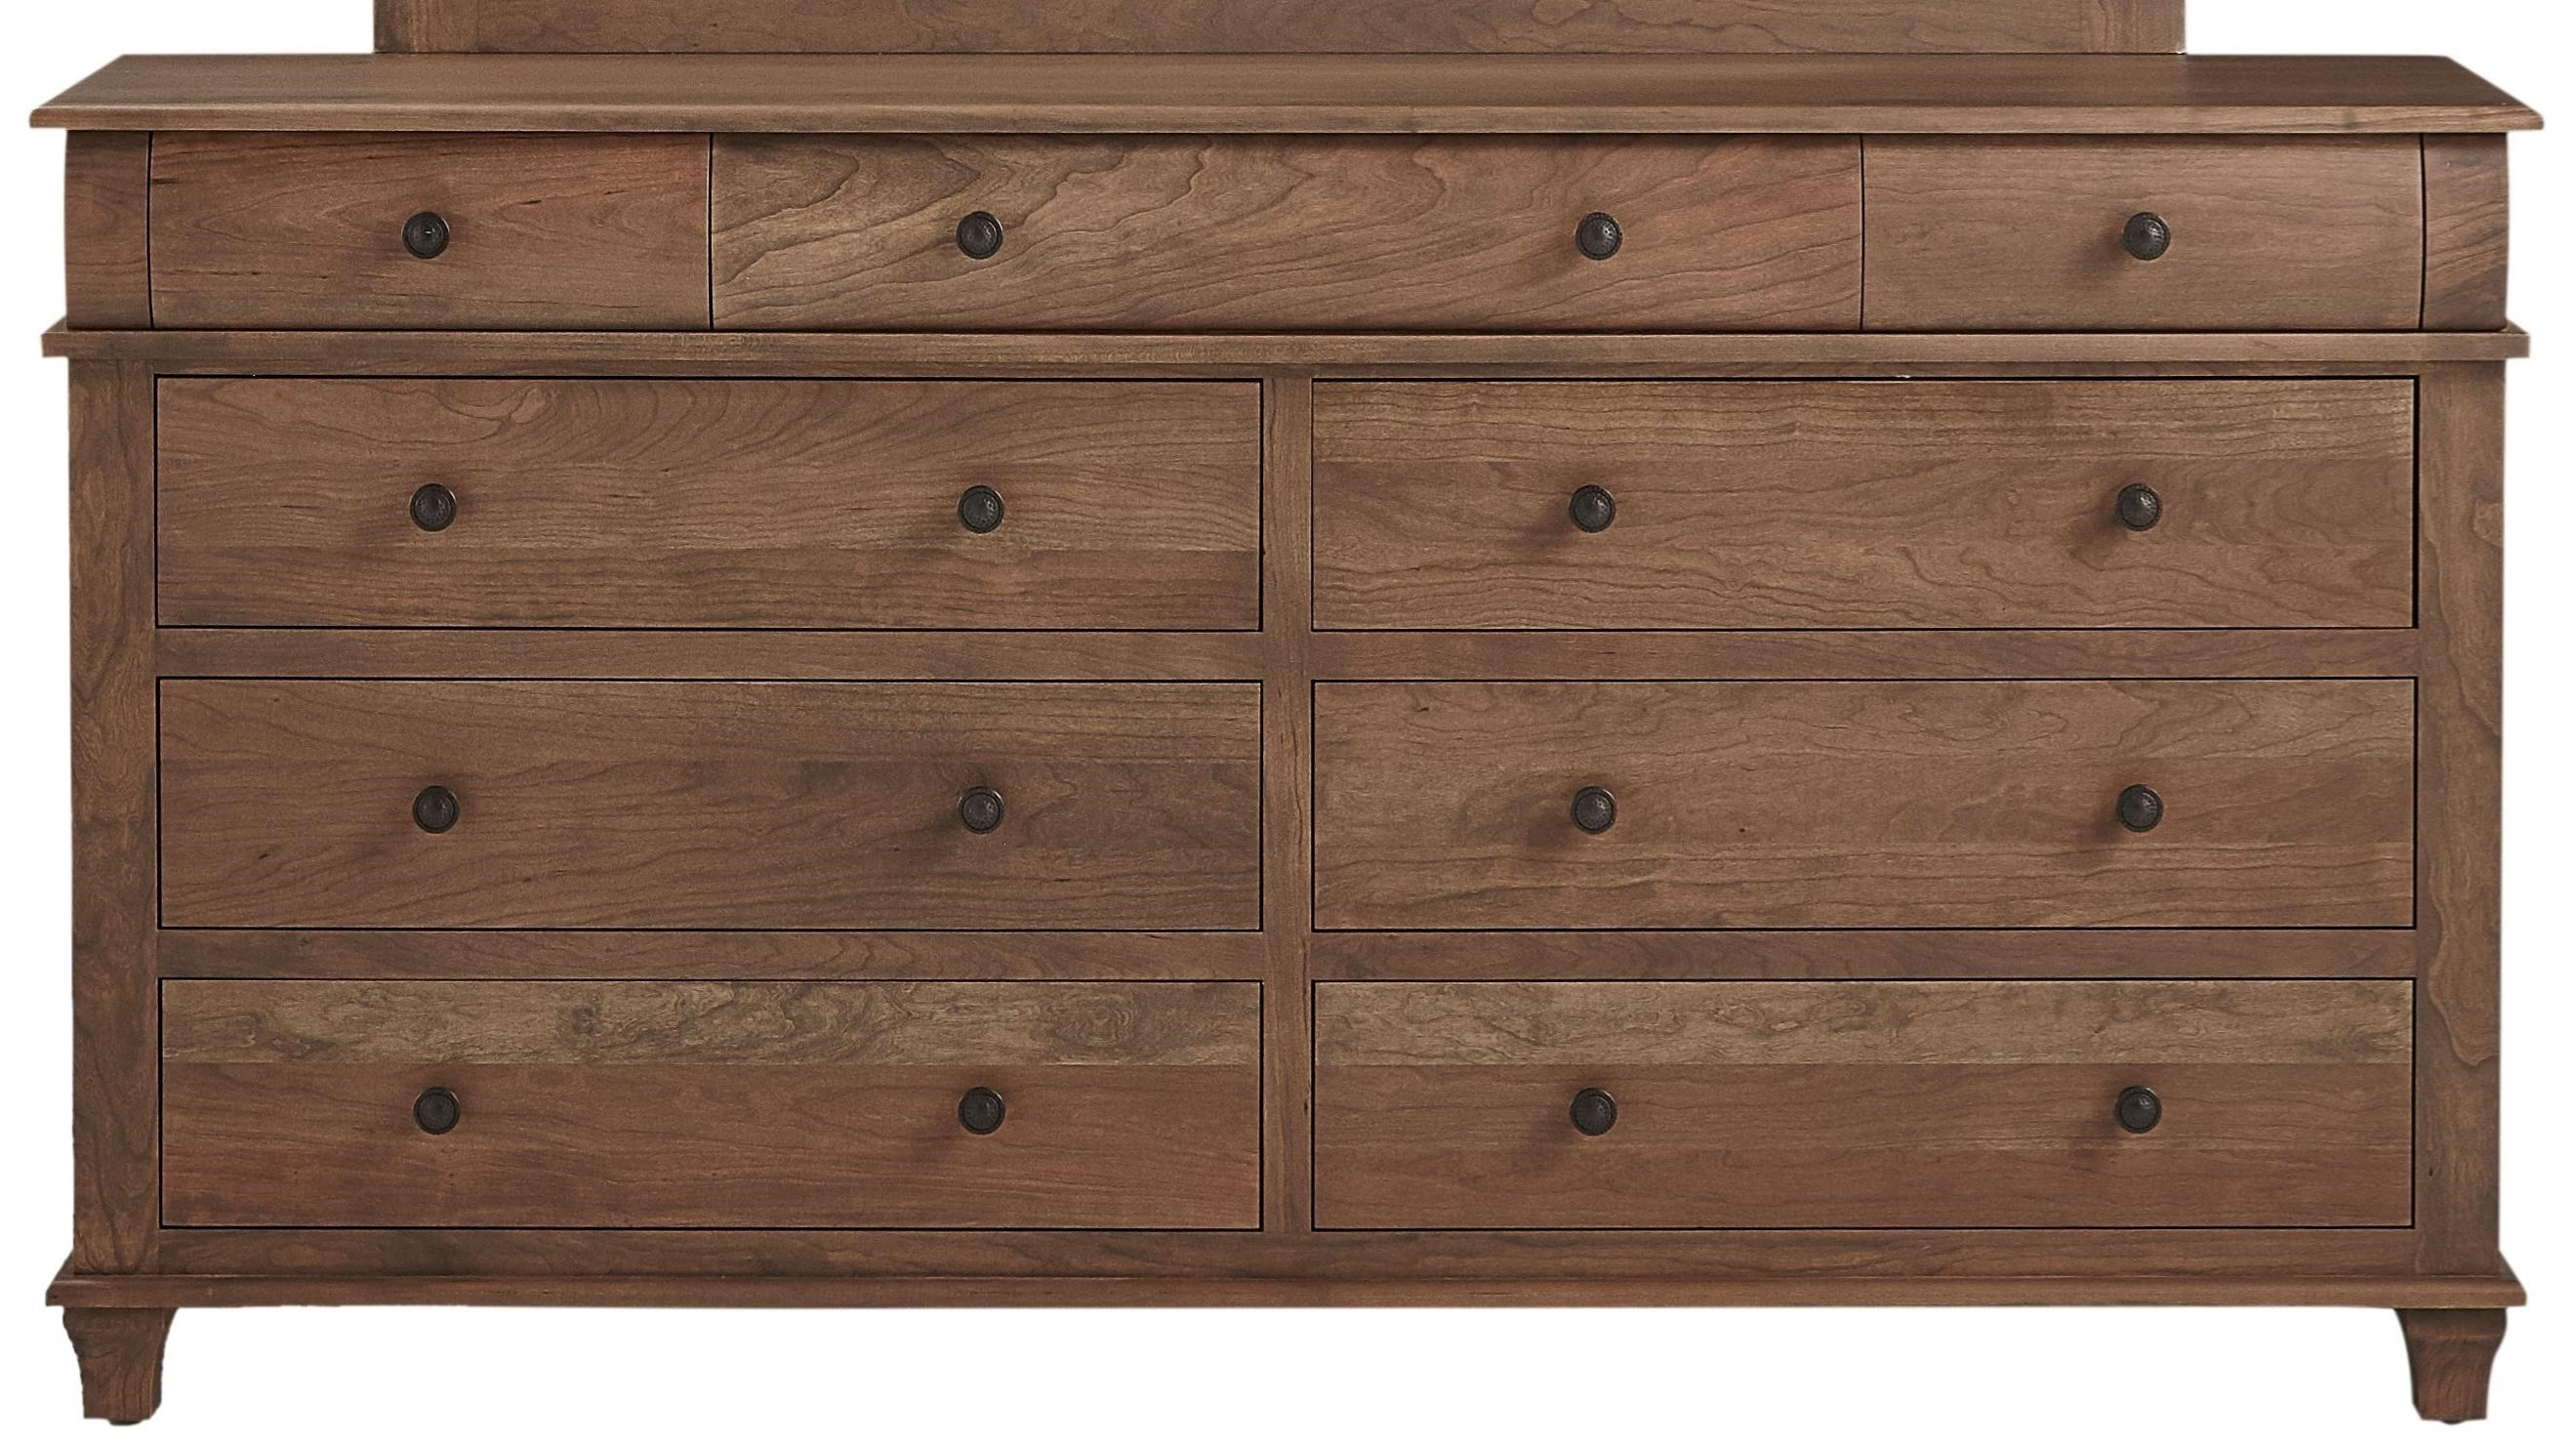 Highland Double Dresser by Daniel's Amish at Saugerties Furniture Mart